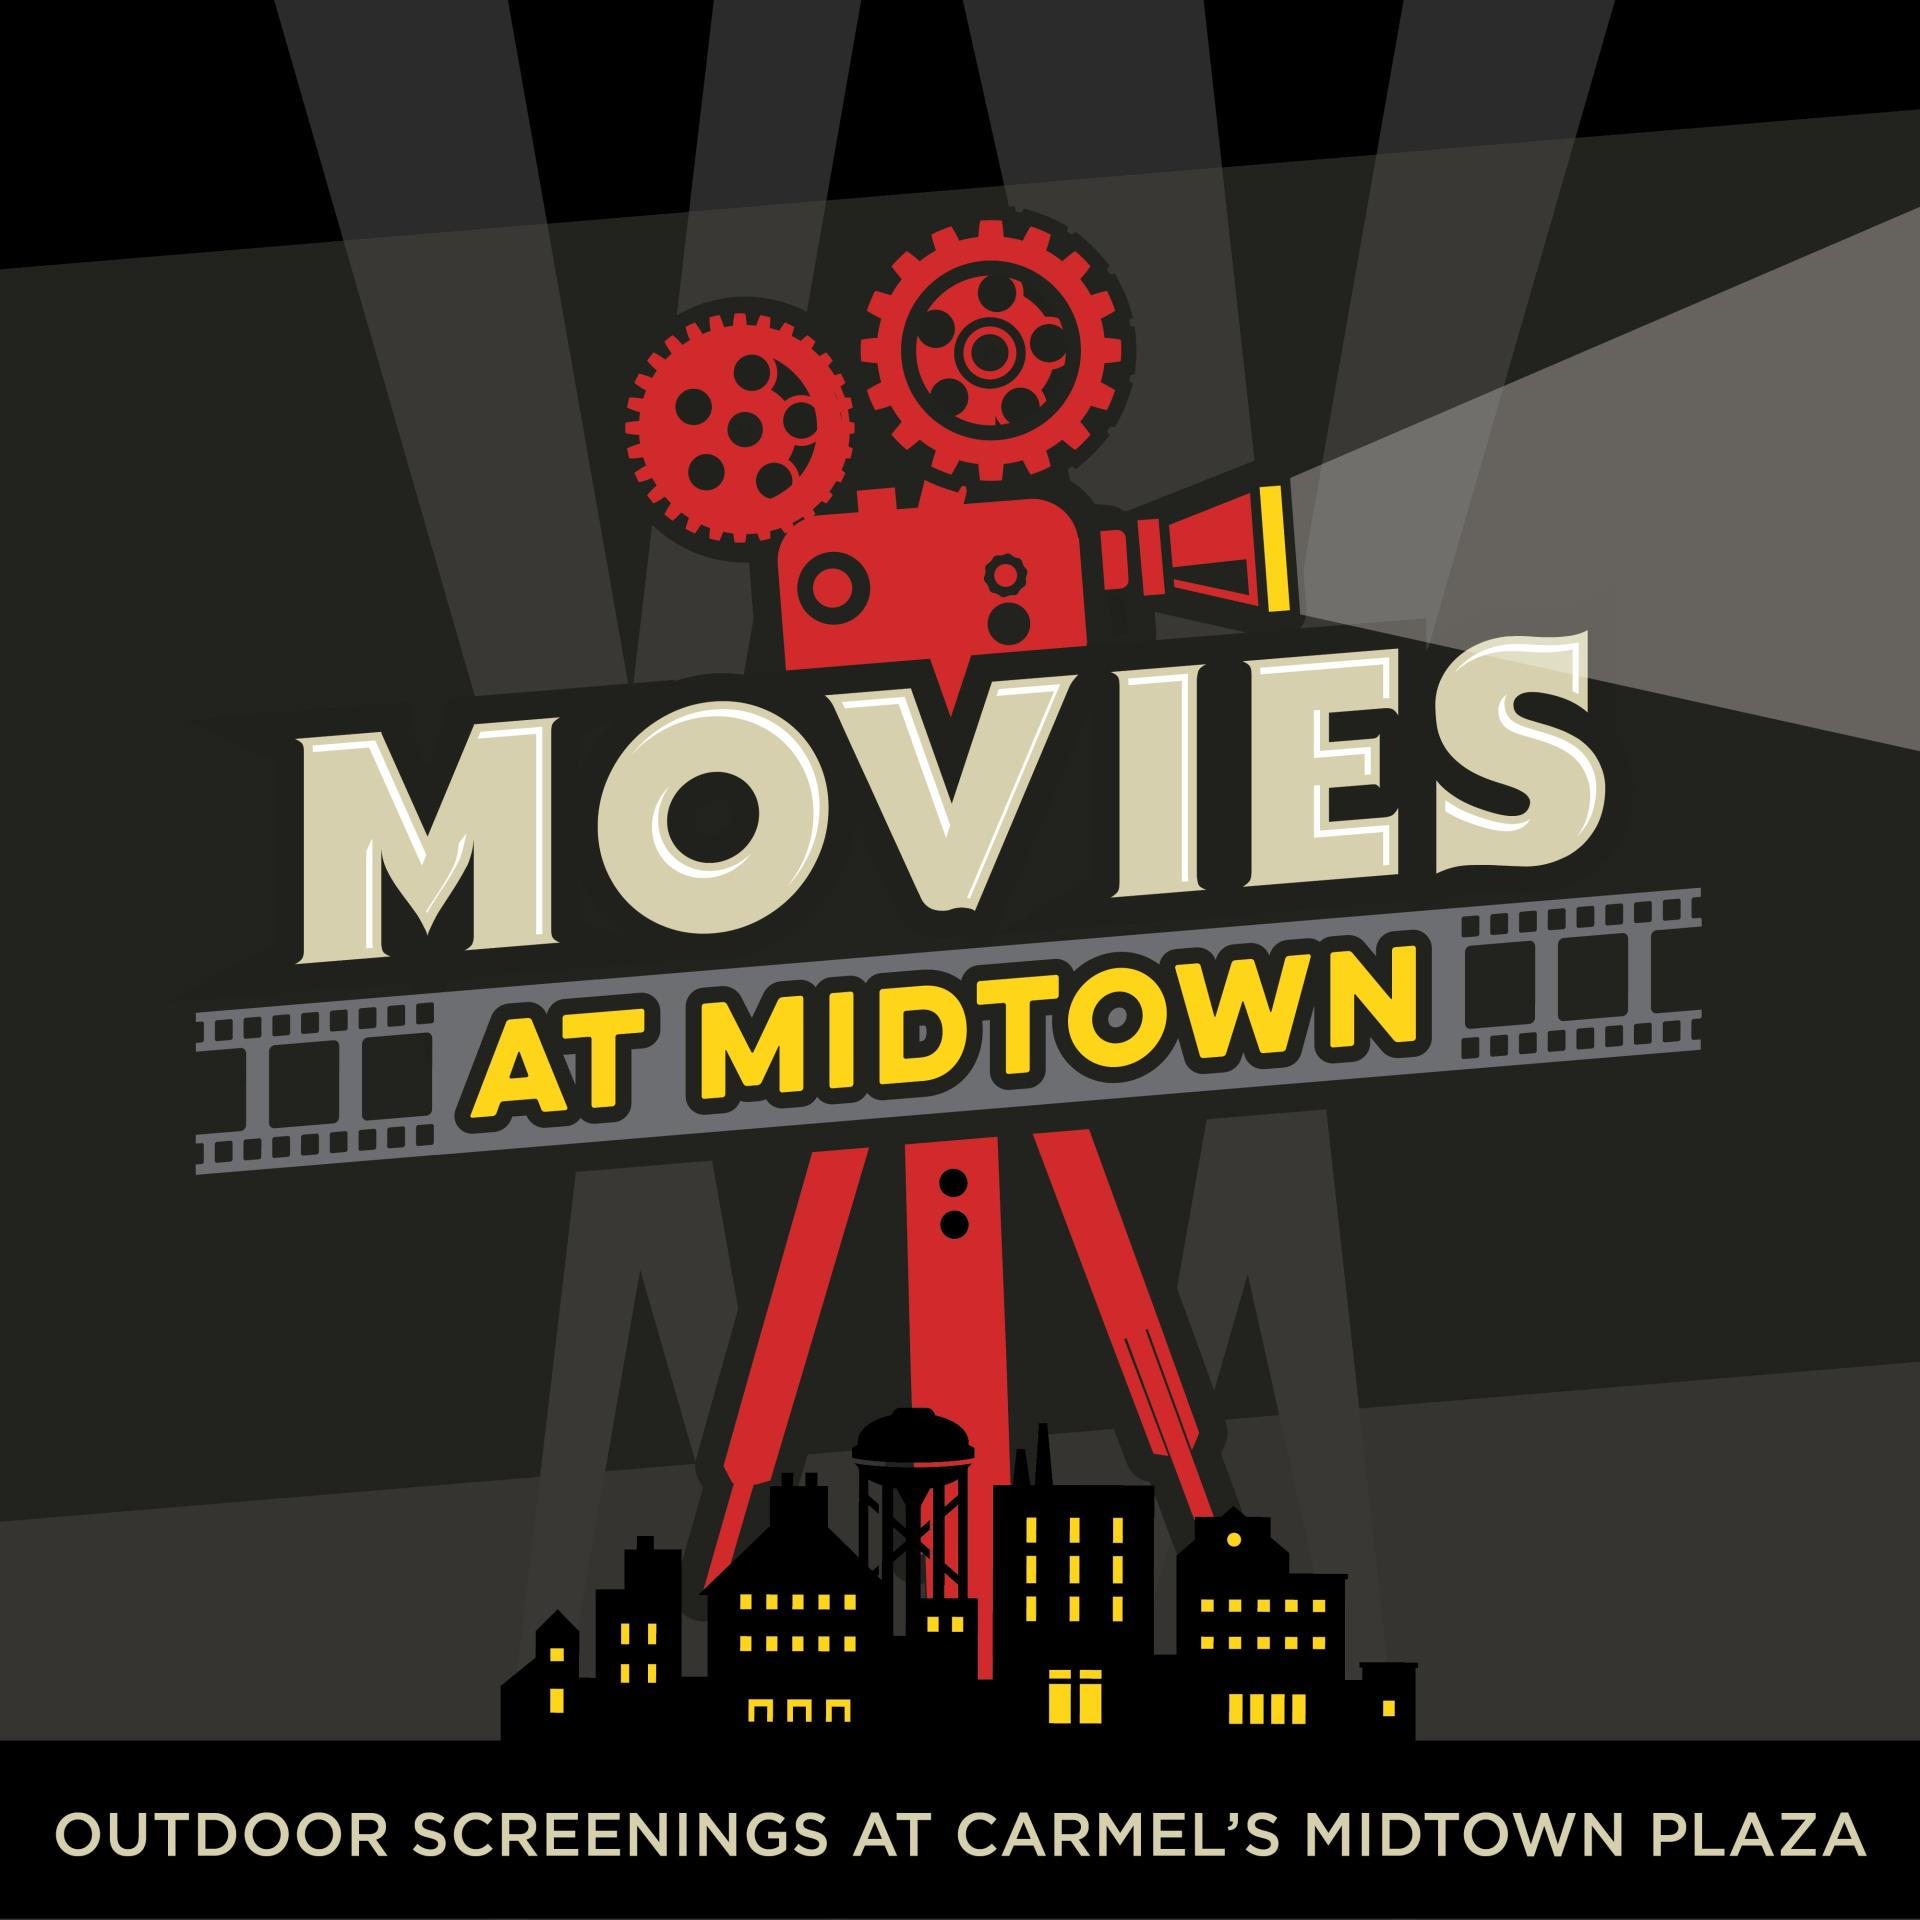 MoviesatMidtown